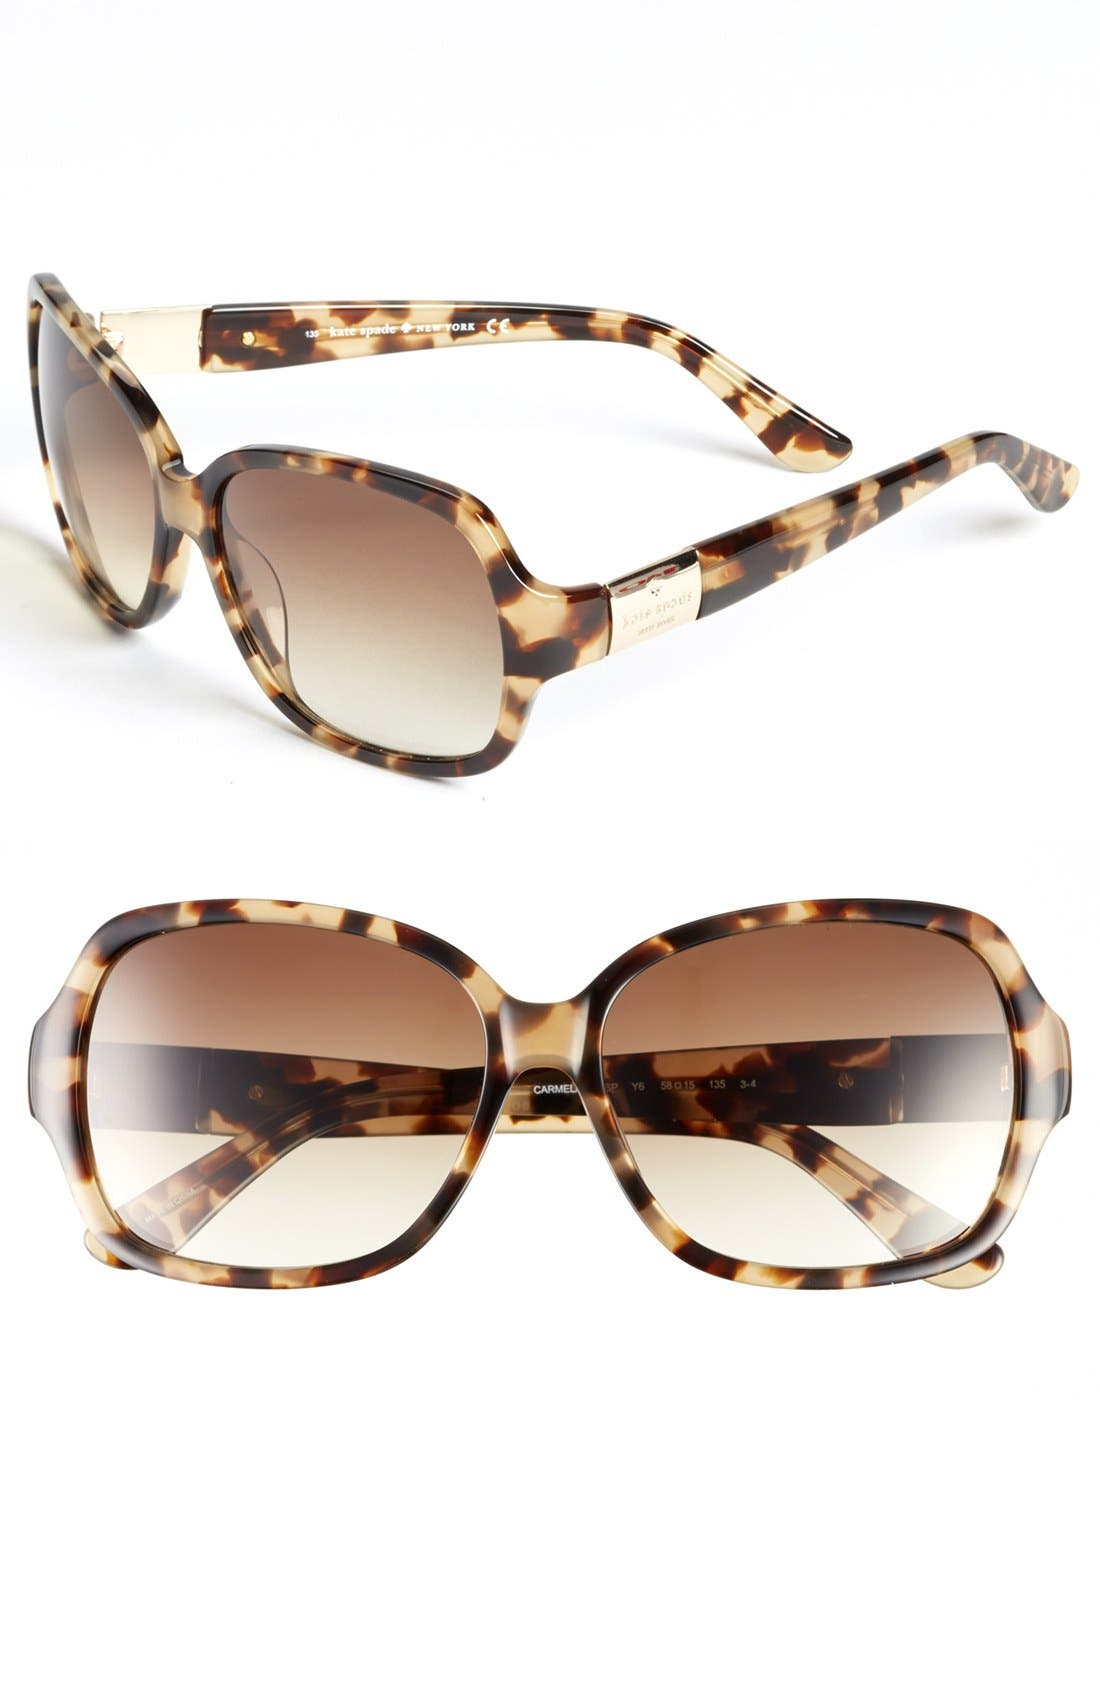 Main Image - kate spade new york 'carmel' 58mm sunglasses